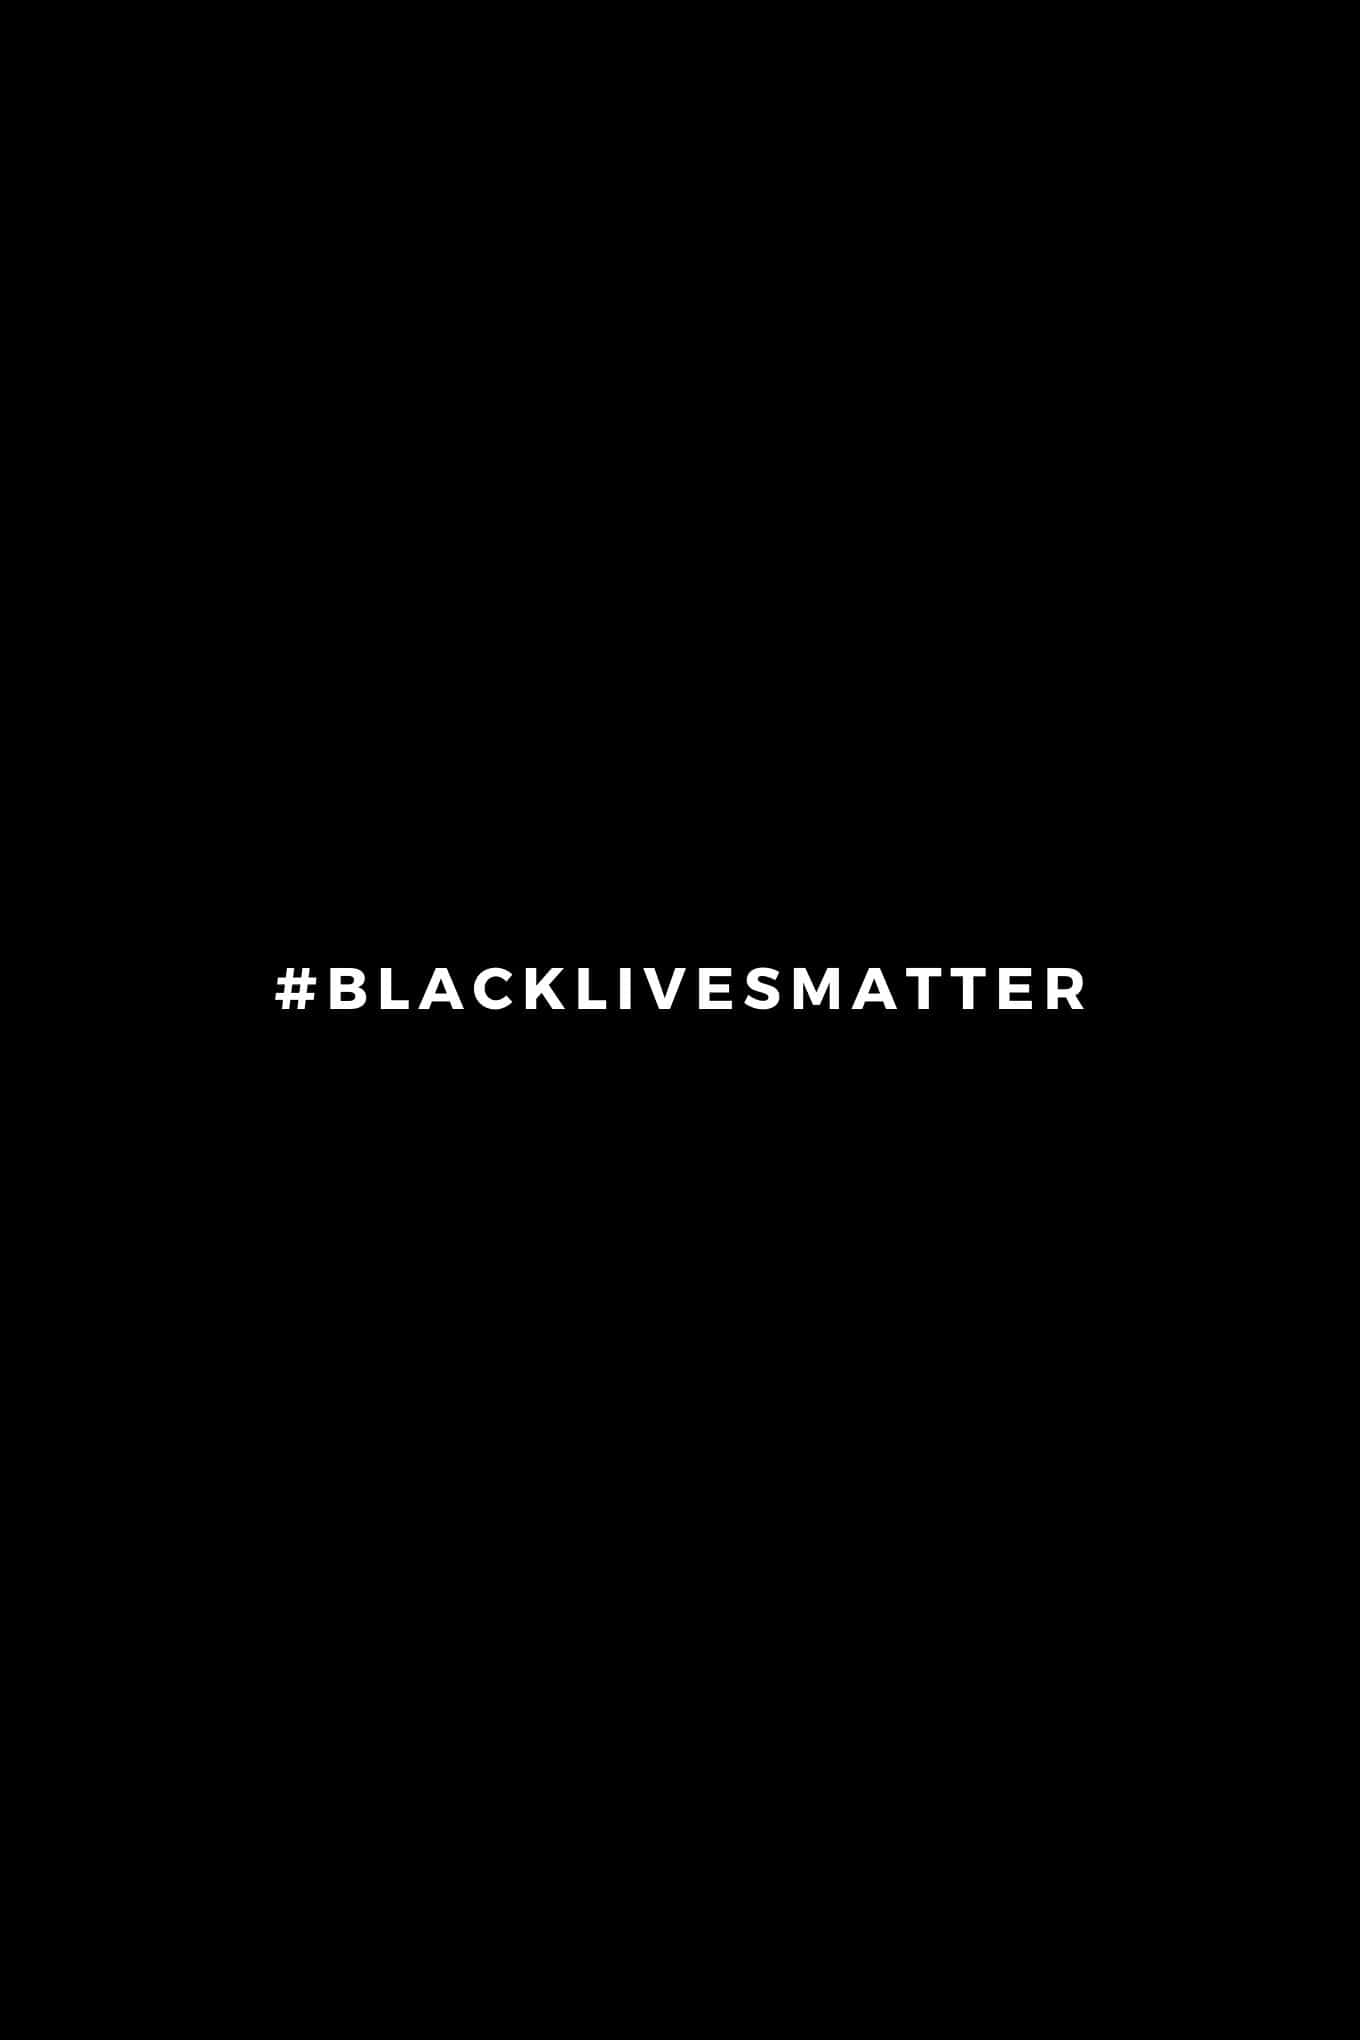 Black Lives Matter & The Importance of Anti-Racism